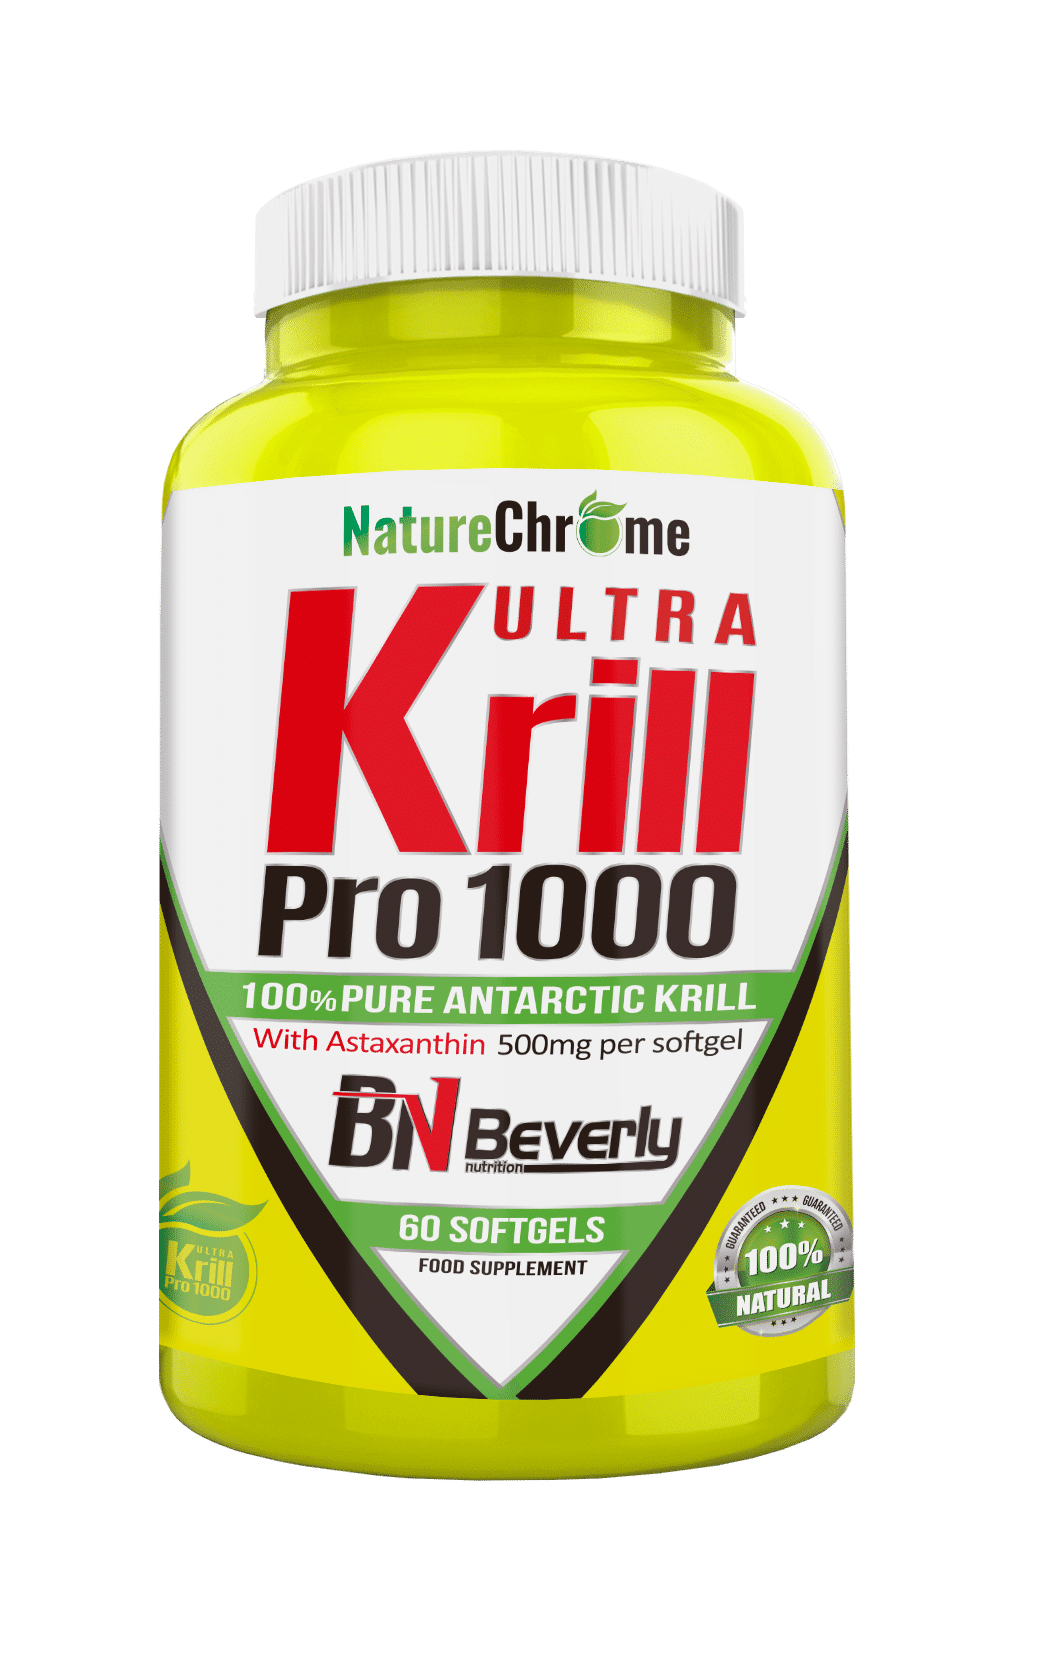 Krill Beverly Nutrition